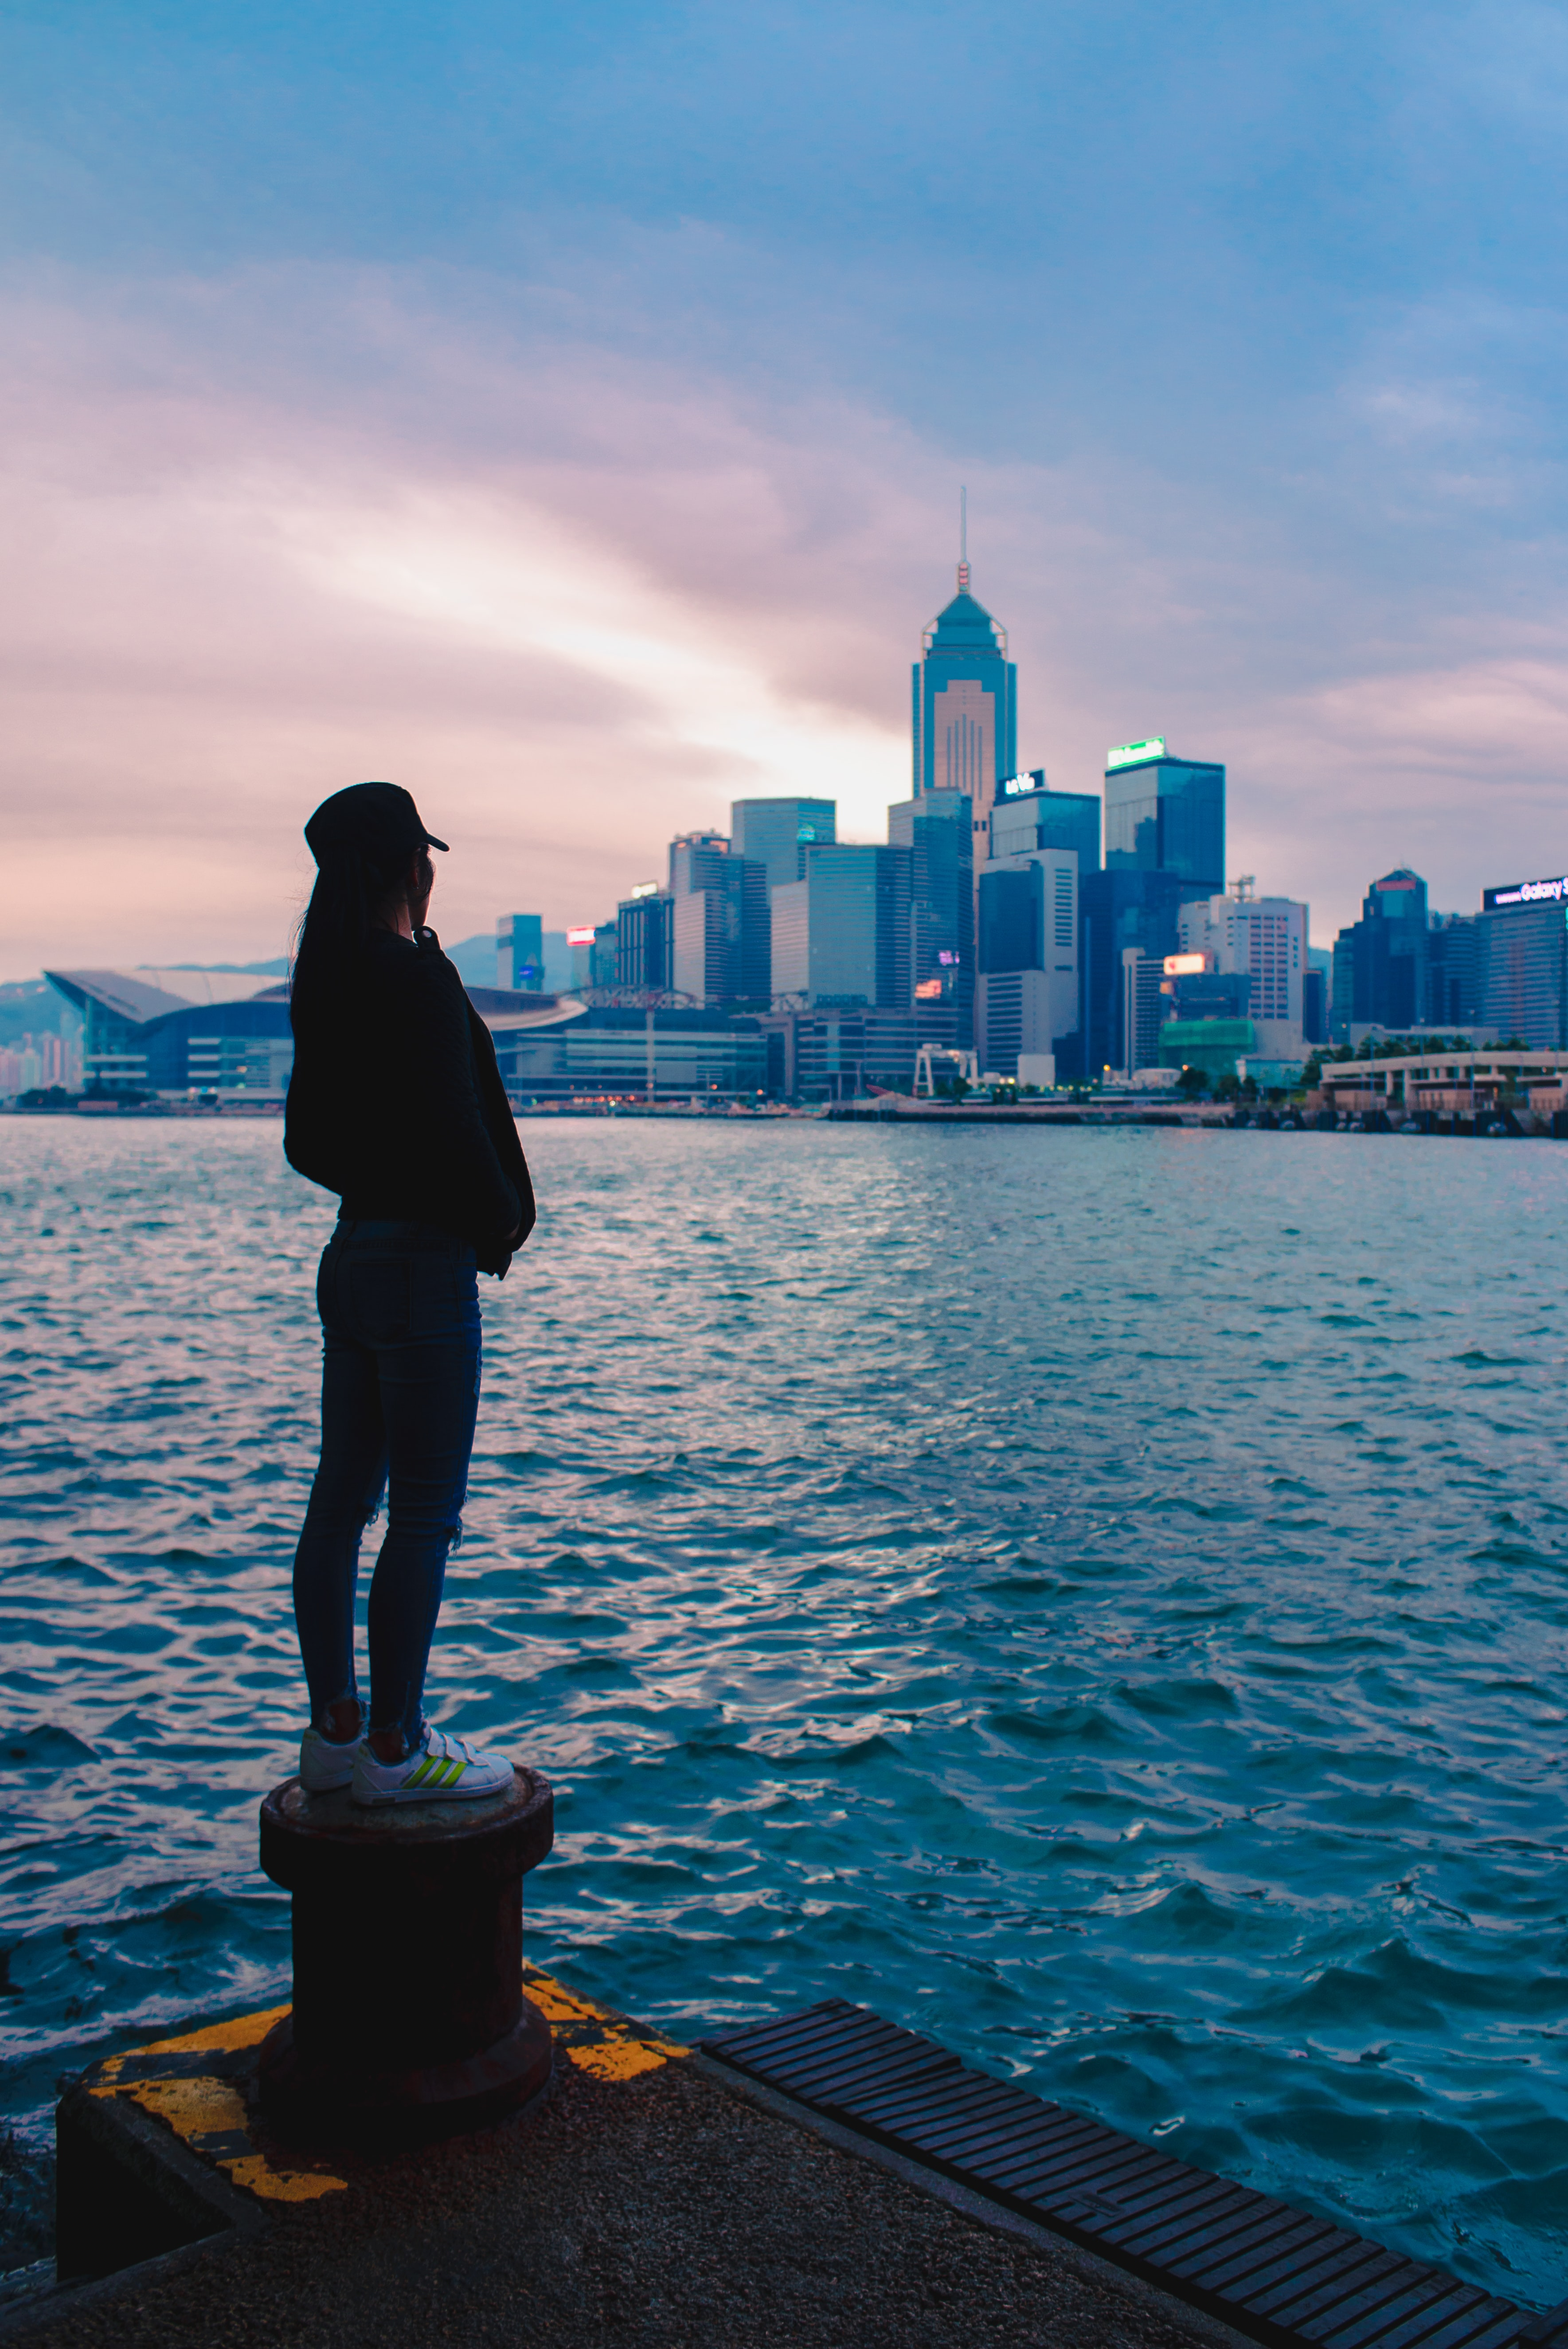 woman in black jacket standing on spool beside body of water with overlooking view of buildings under dark clouds background